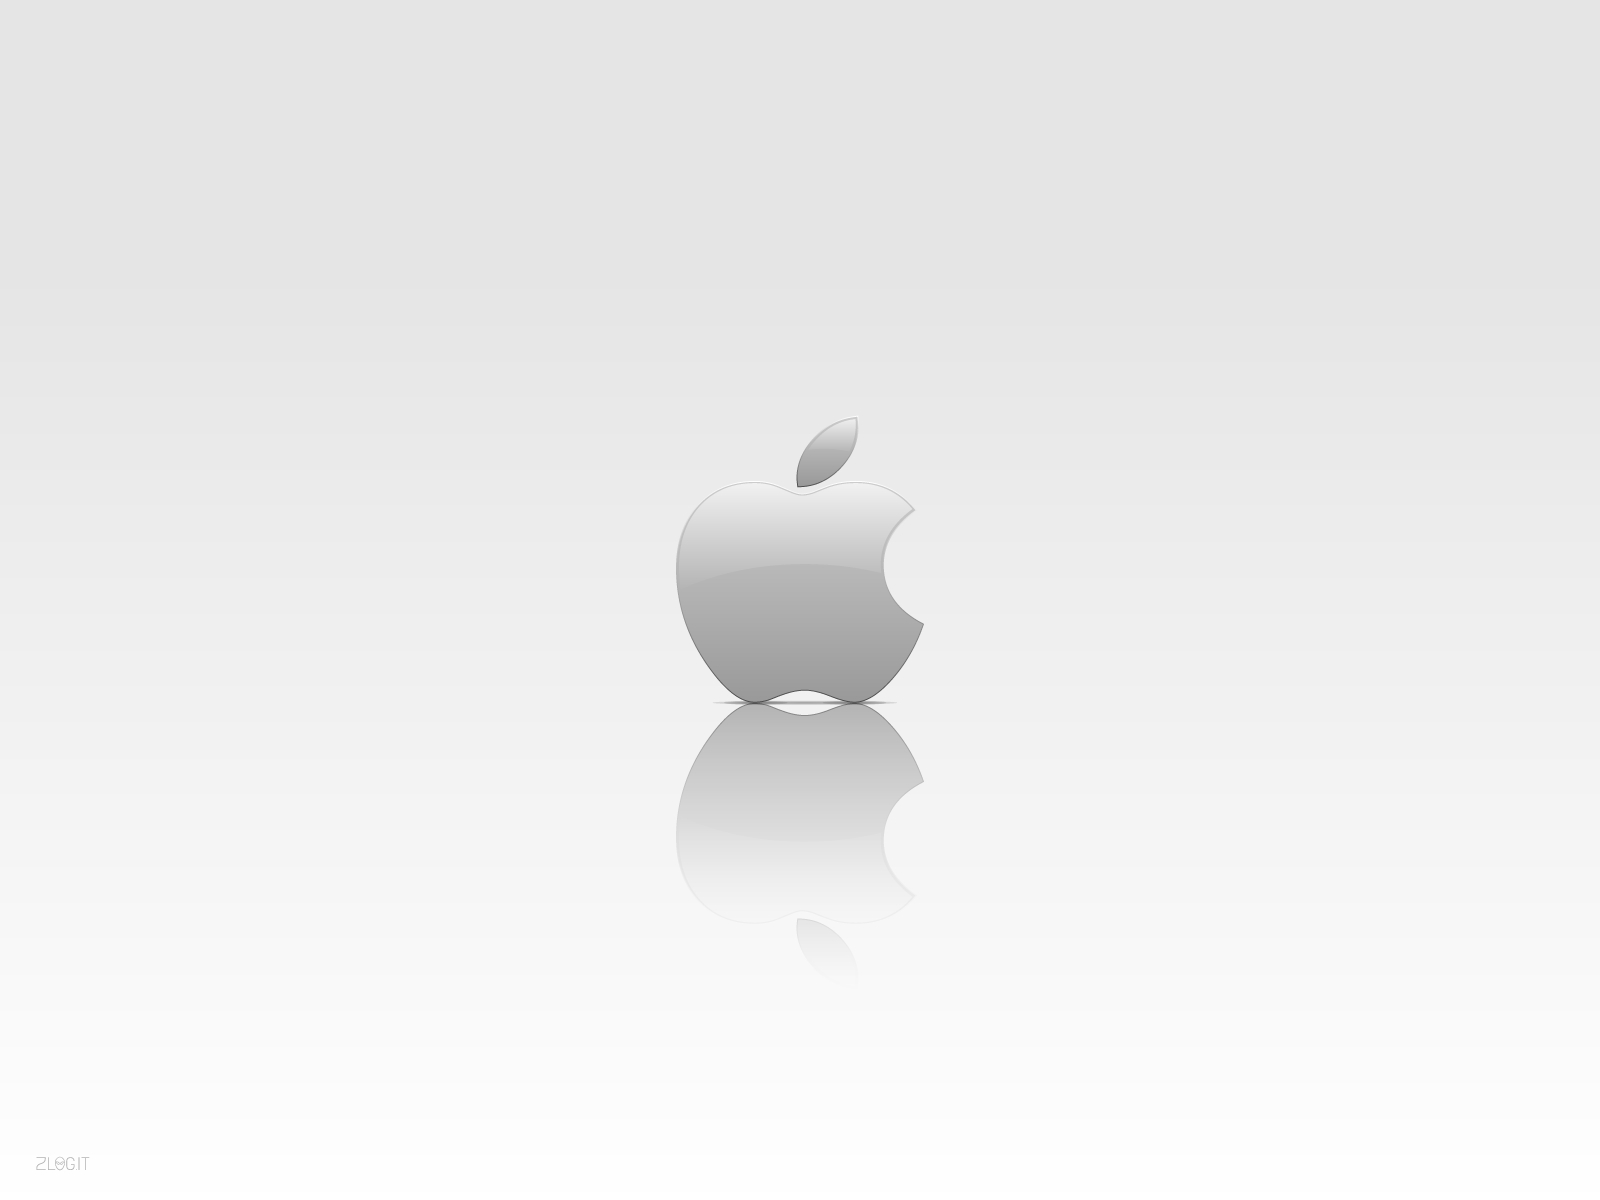 Starting With A Apple Logo